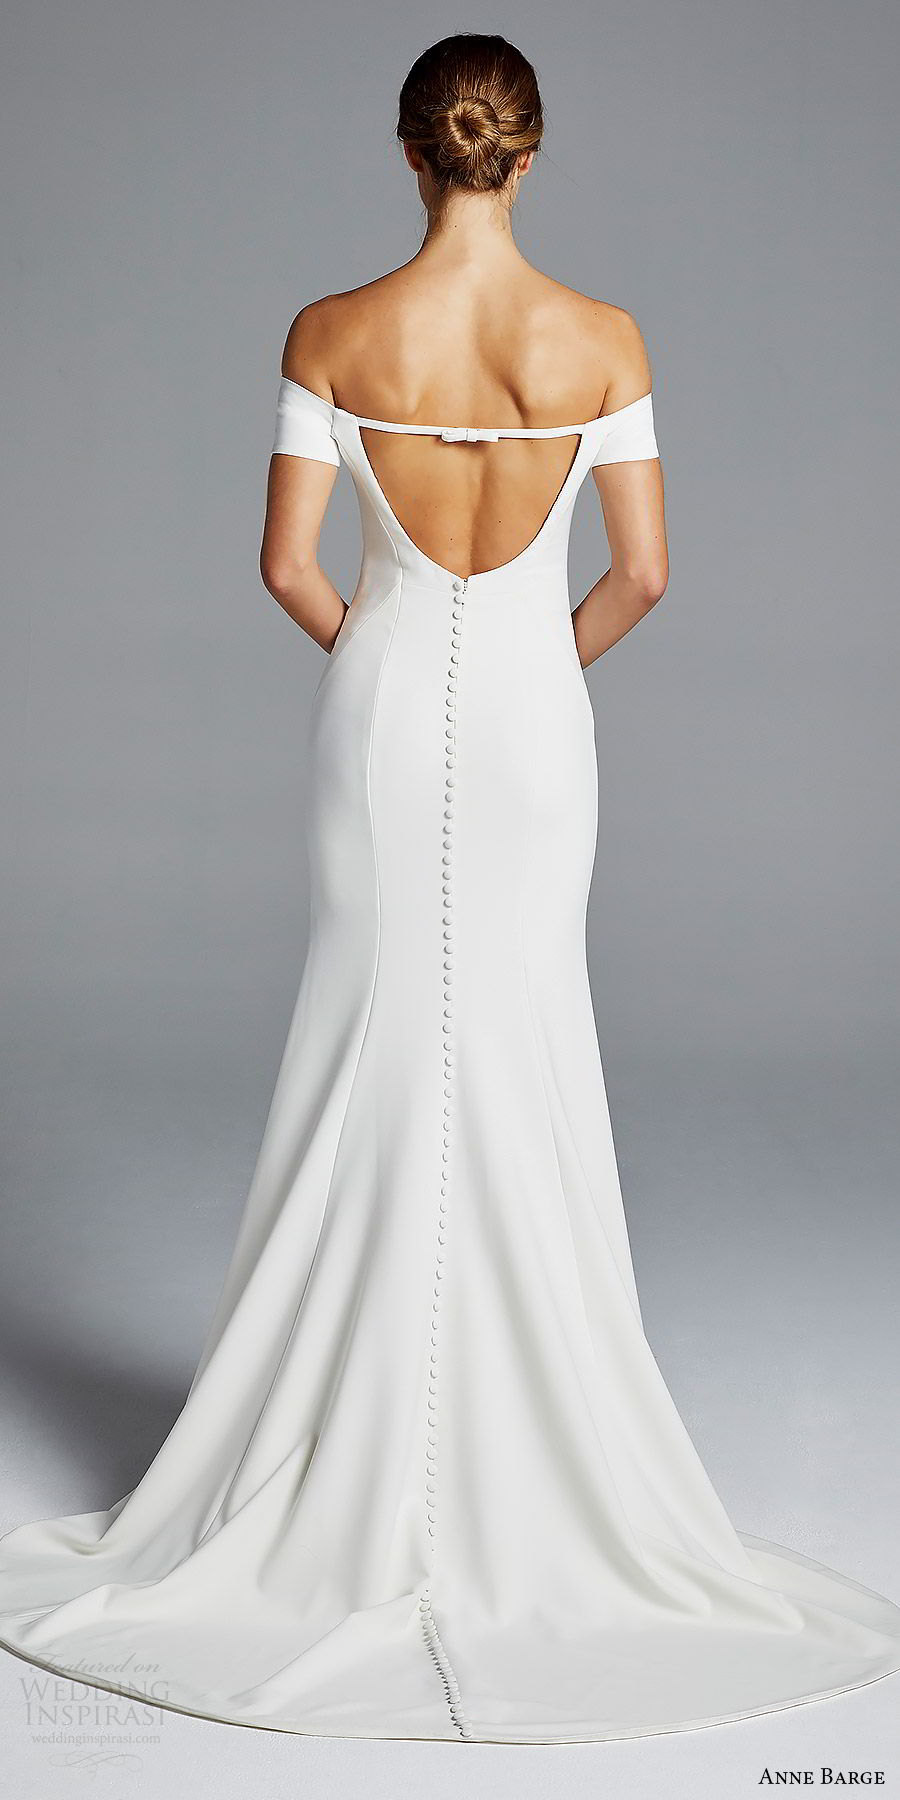 anne barge bridal spring 2019 off shoulder short sleeves sweetheart neckline minimally embellished sheath wedding dress (jolie) bv chic modern elegant